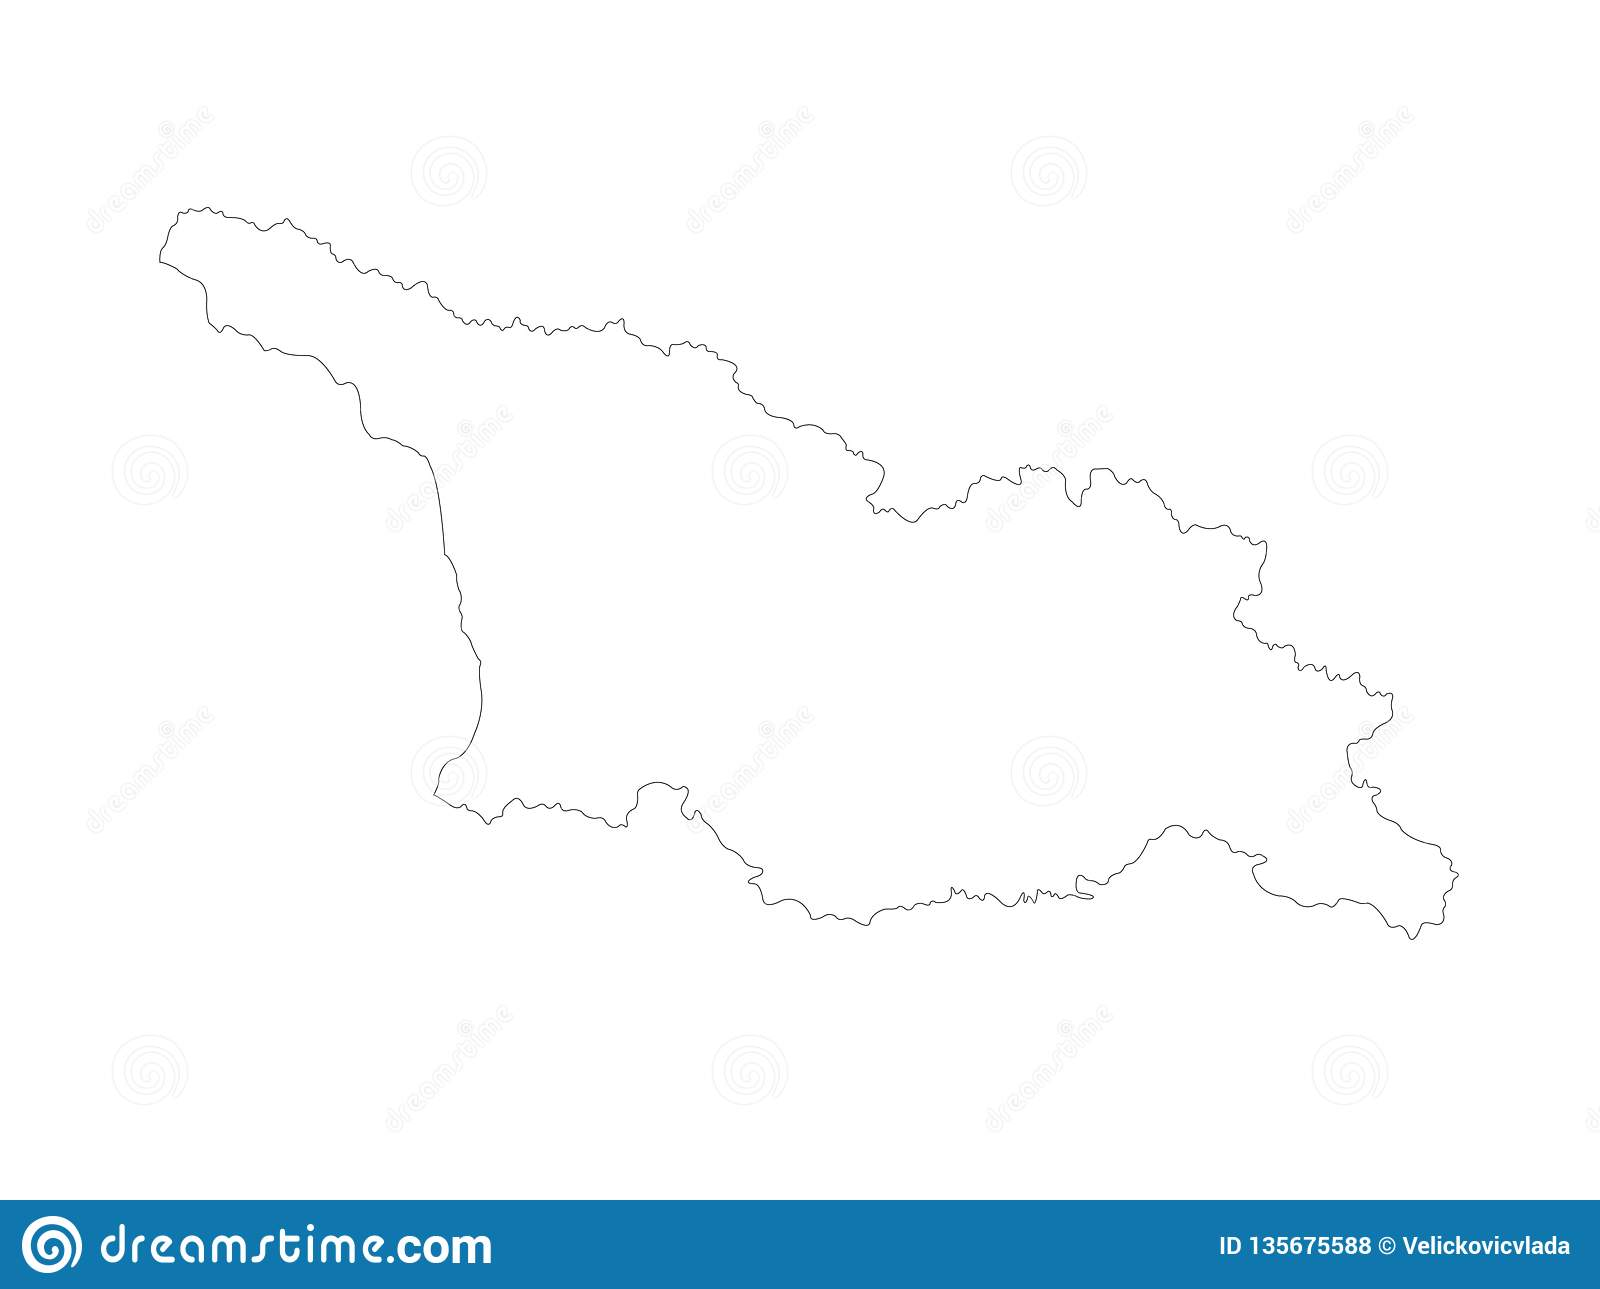 Country Of Georgia Map.Georgia Country Map Is A Country In The Caucasus Region Of Eurasia